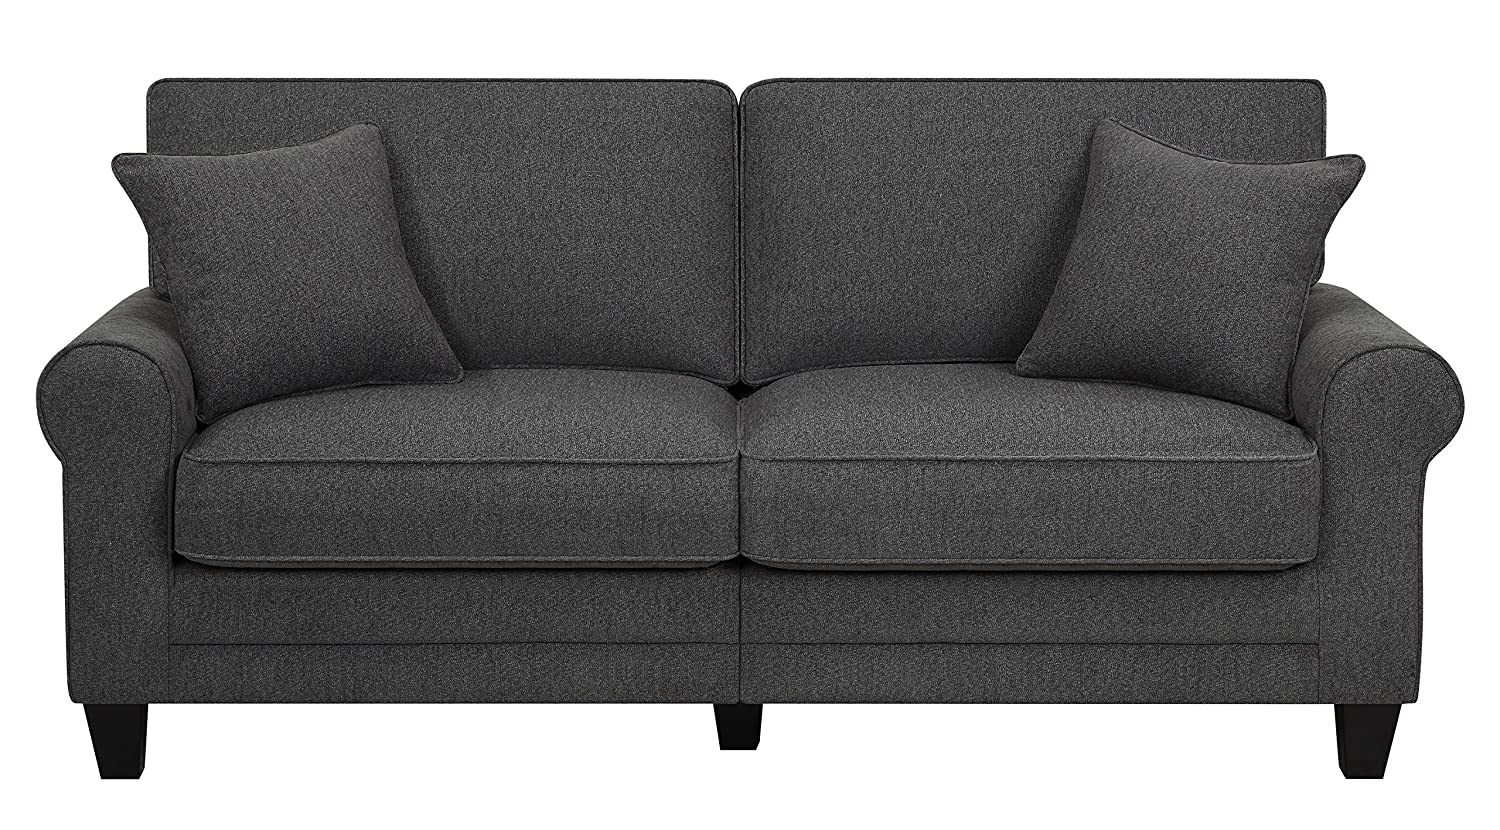 Serta® RTA Copenhagen Collection 78 Sofa in Steeple Gray - CR46225PB